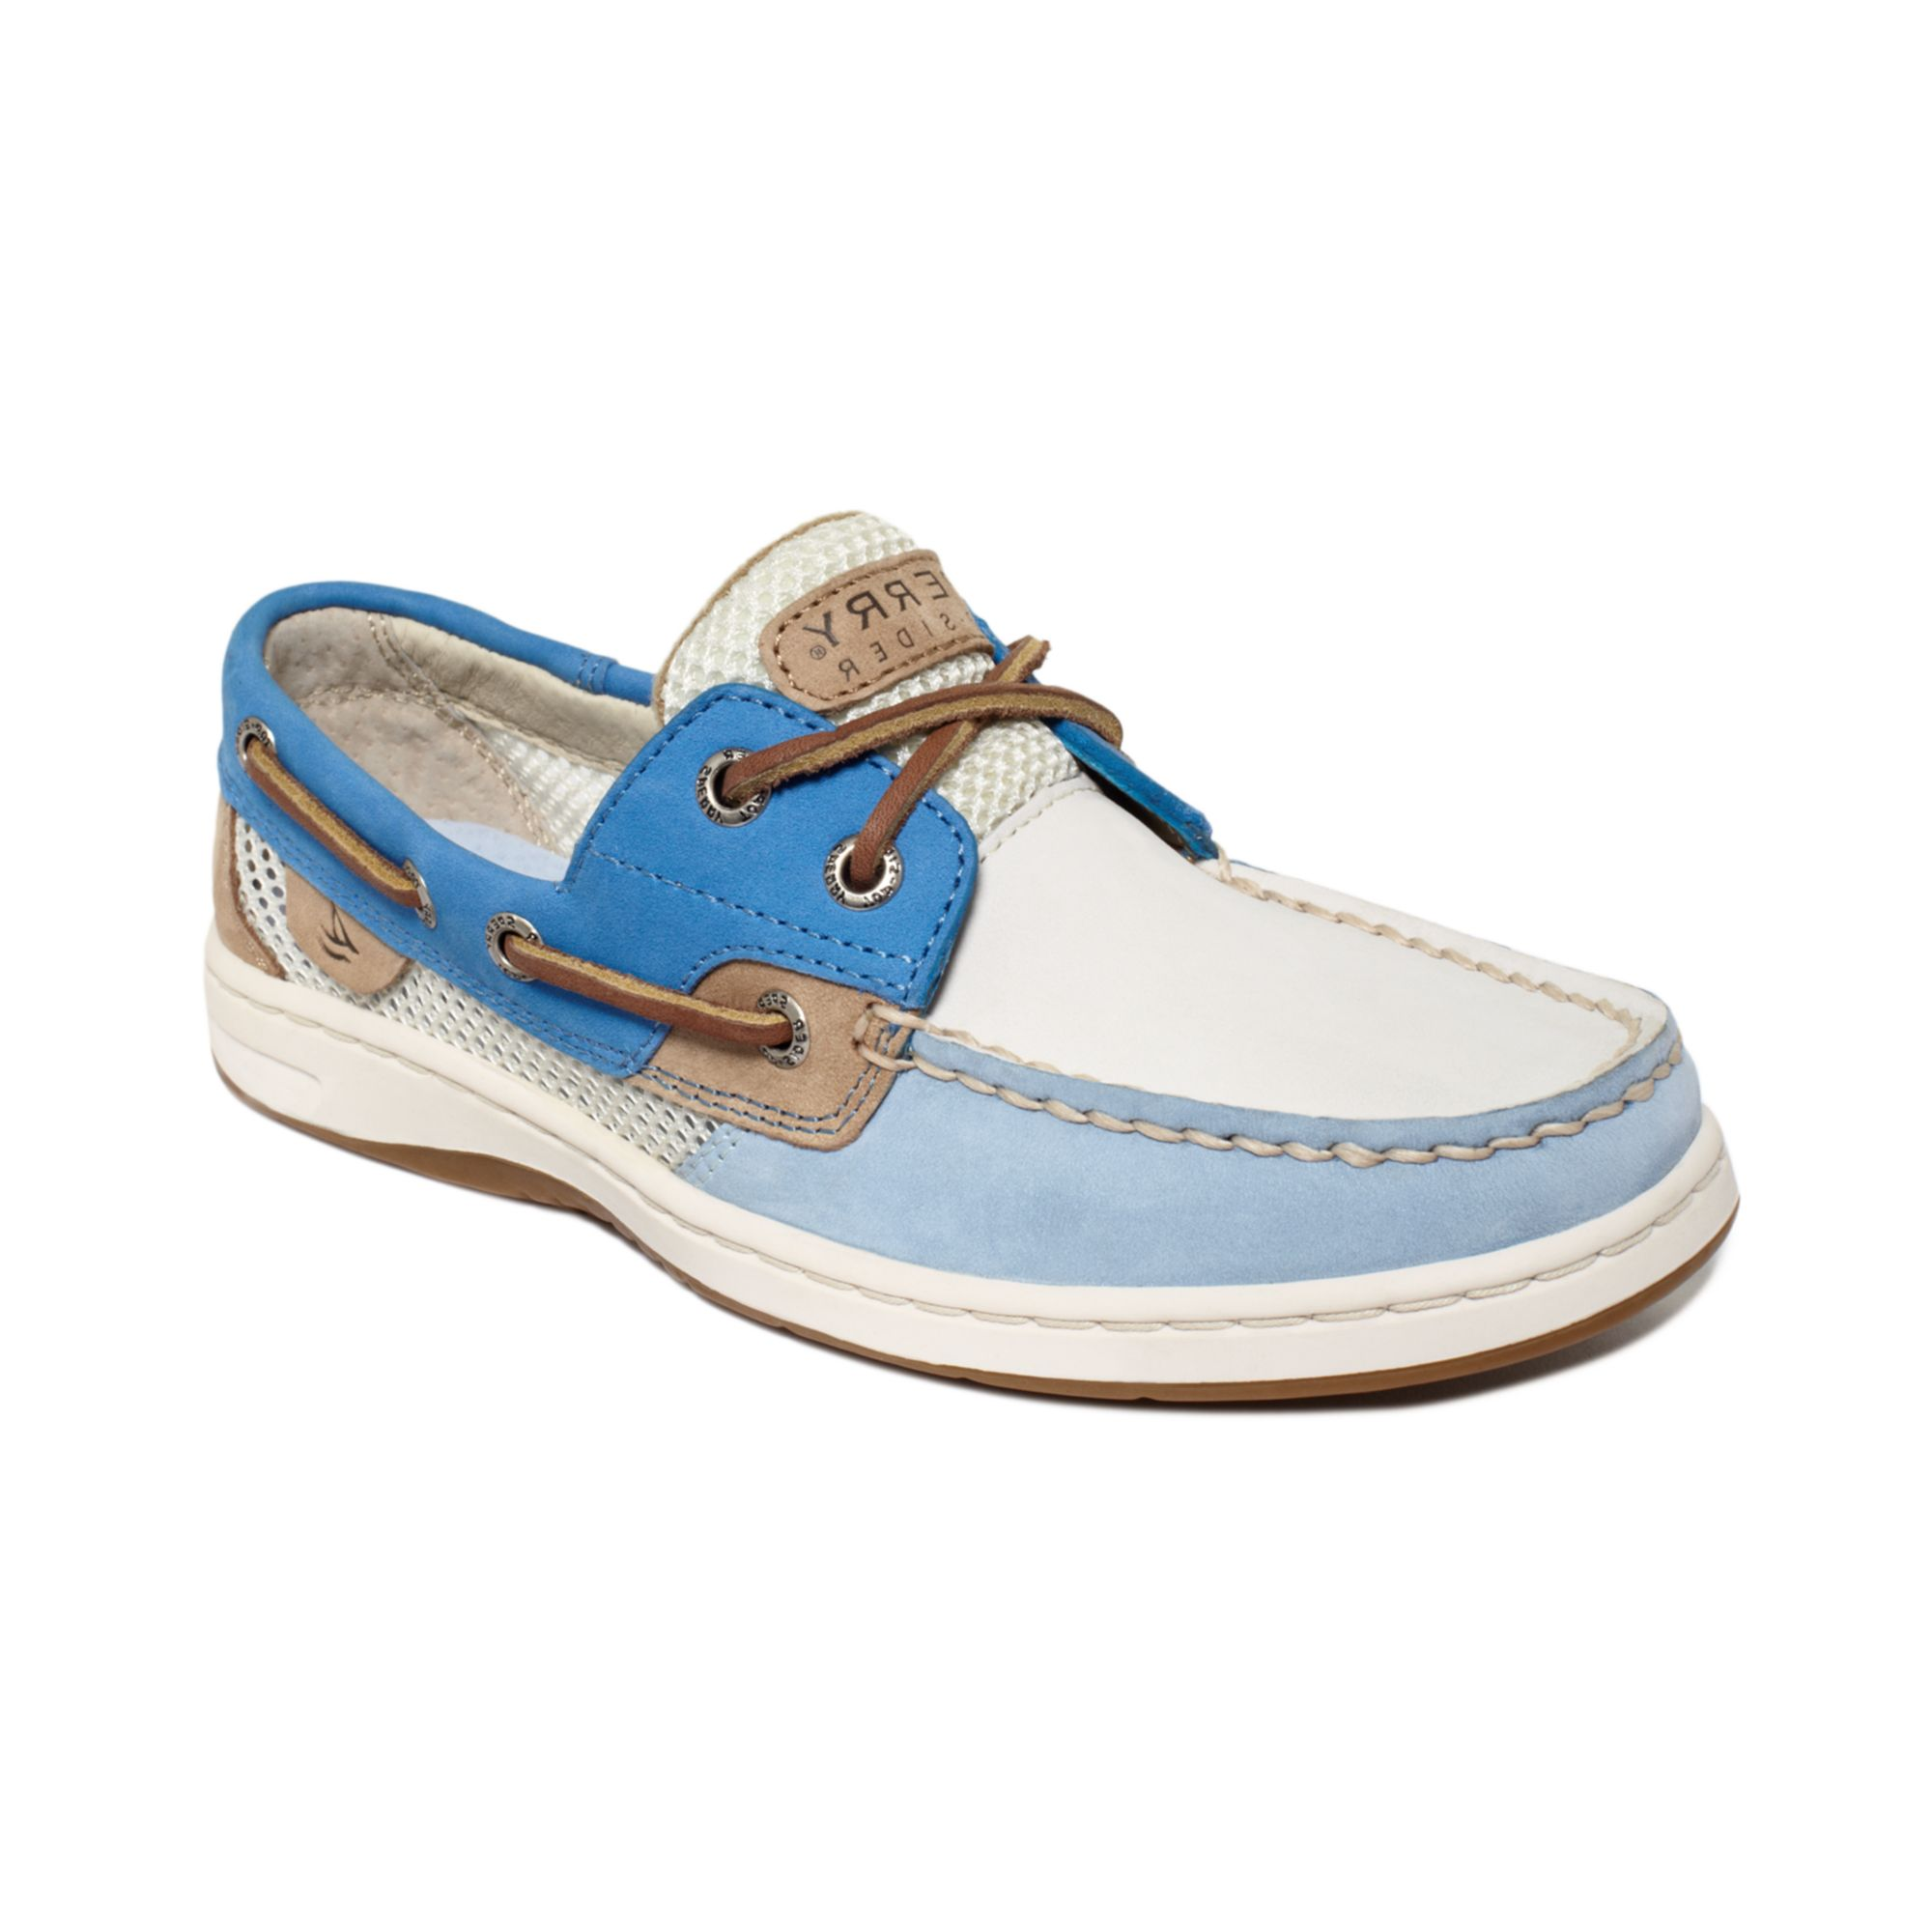 sperry top sider bluefish boat shoes in white blue white